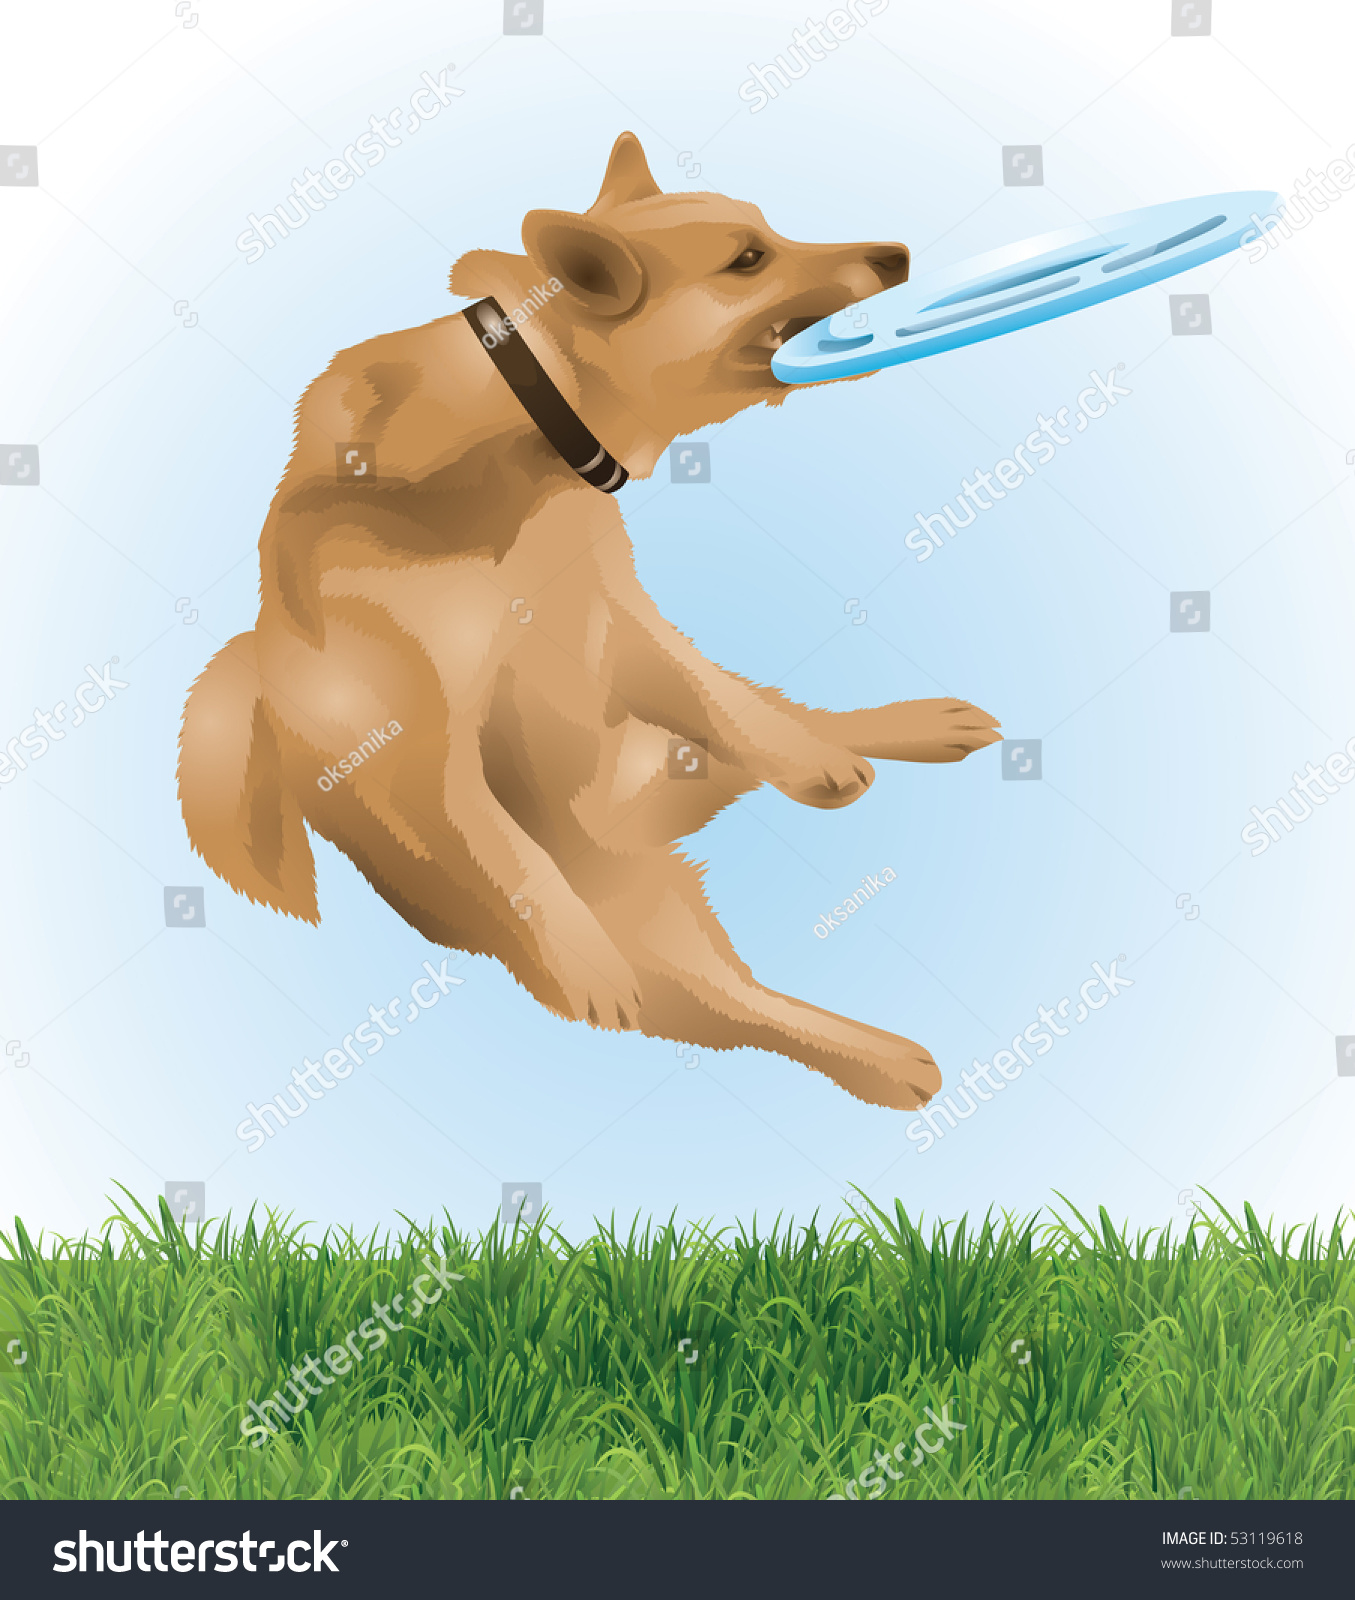 Dog Catching A Frisbee In The Air